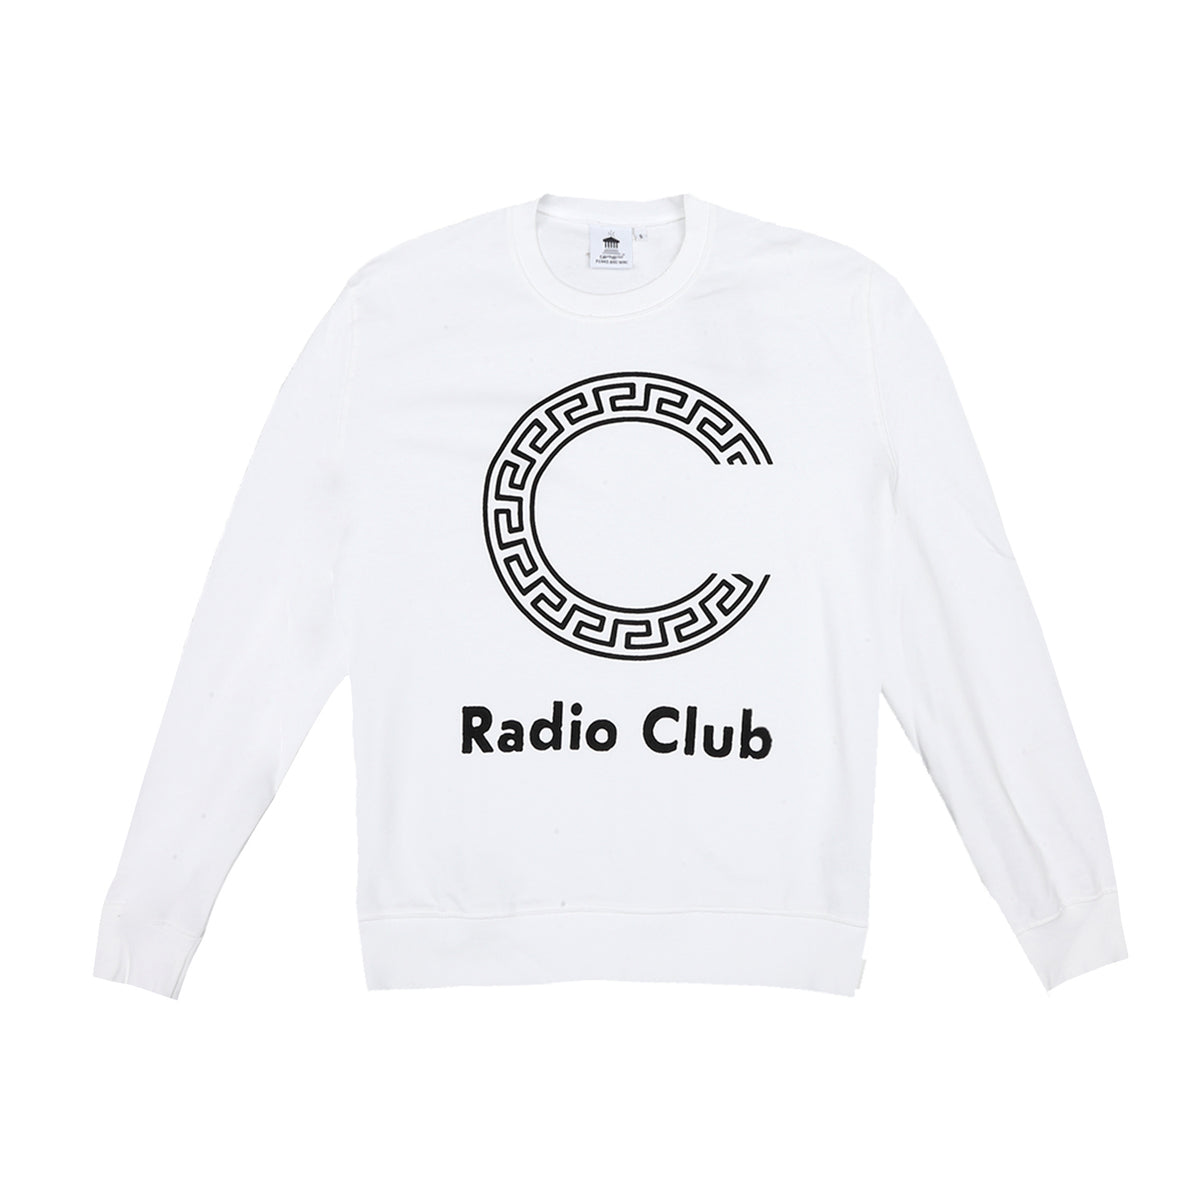 CARHARTT x P.A.M - RADIO CLUB LOGO SWEAT - WHITE/BLACK